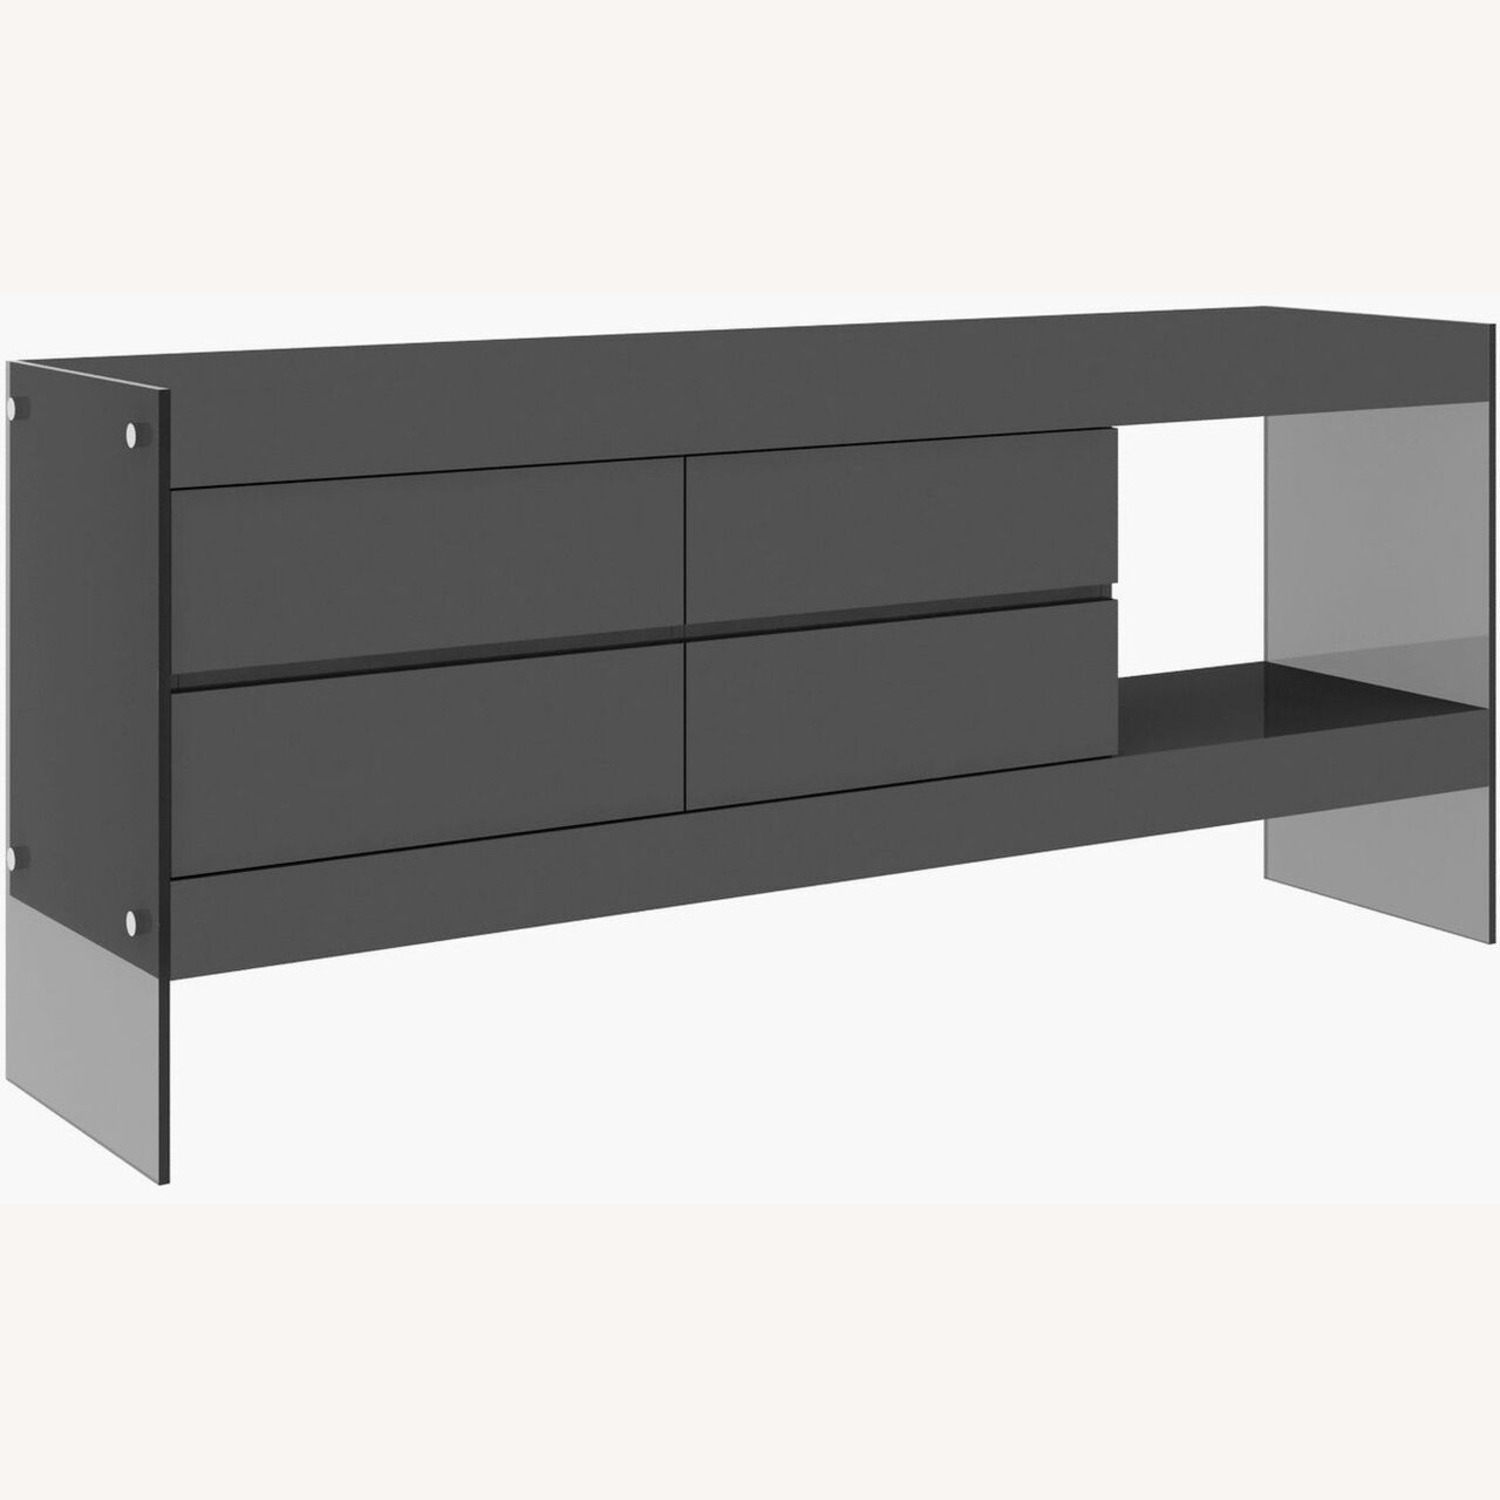 Modern Buffet In Grey Finish W/ Glass Base - image-1